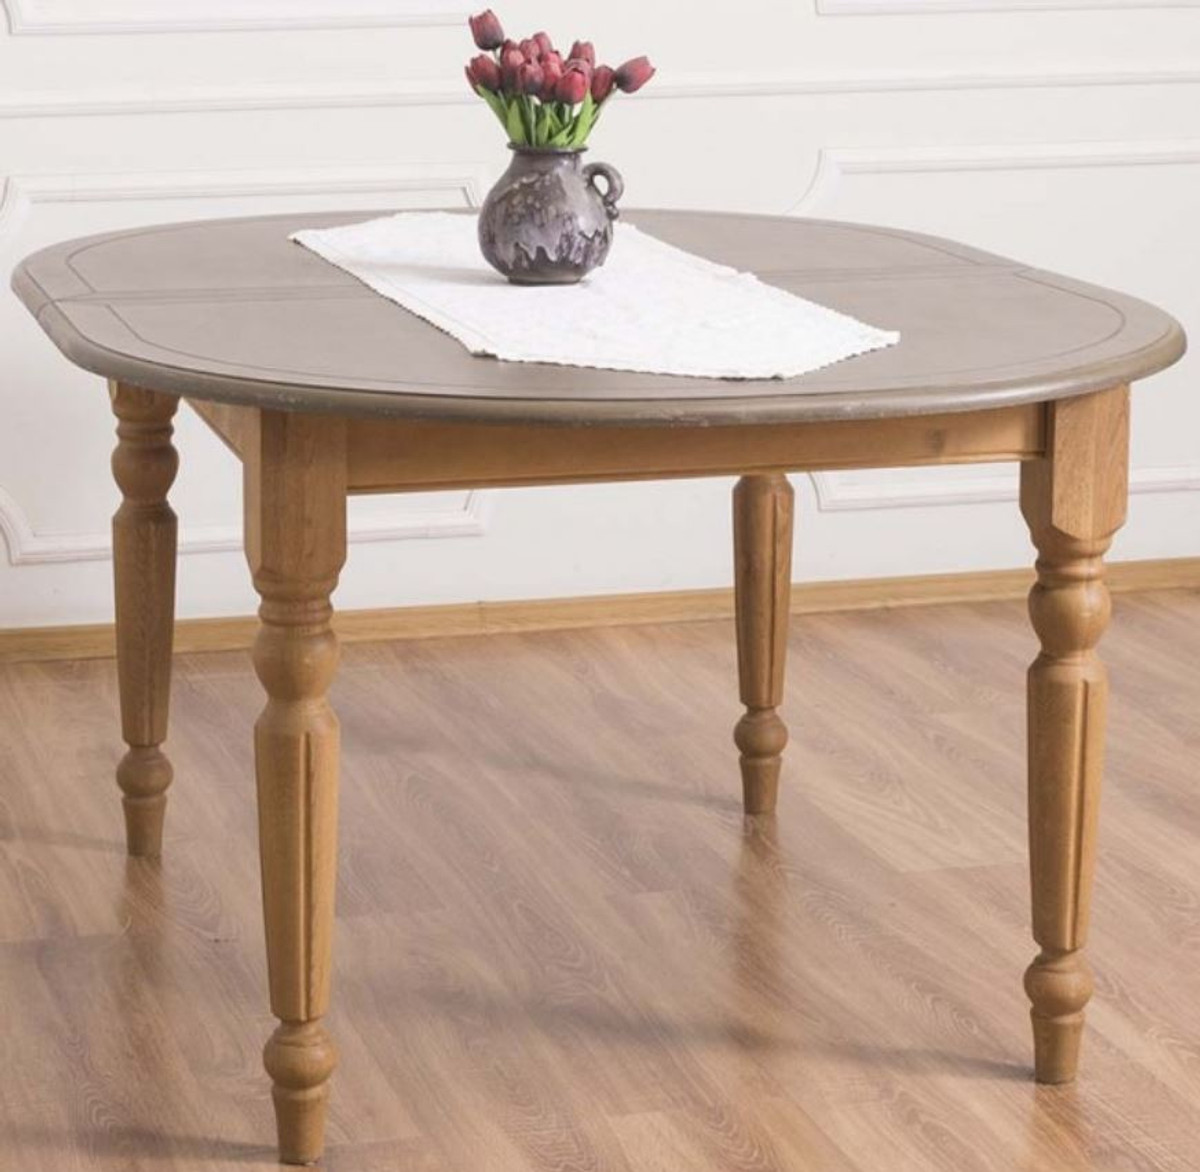 Casa Padrino Country Style Dining Table Gray Light Brown 160 X 120 X H 78 Cm Oval Solid Wood Kitchen Table With Oak Wood Top